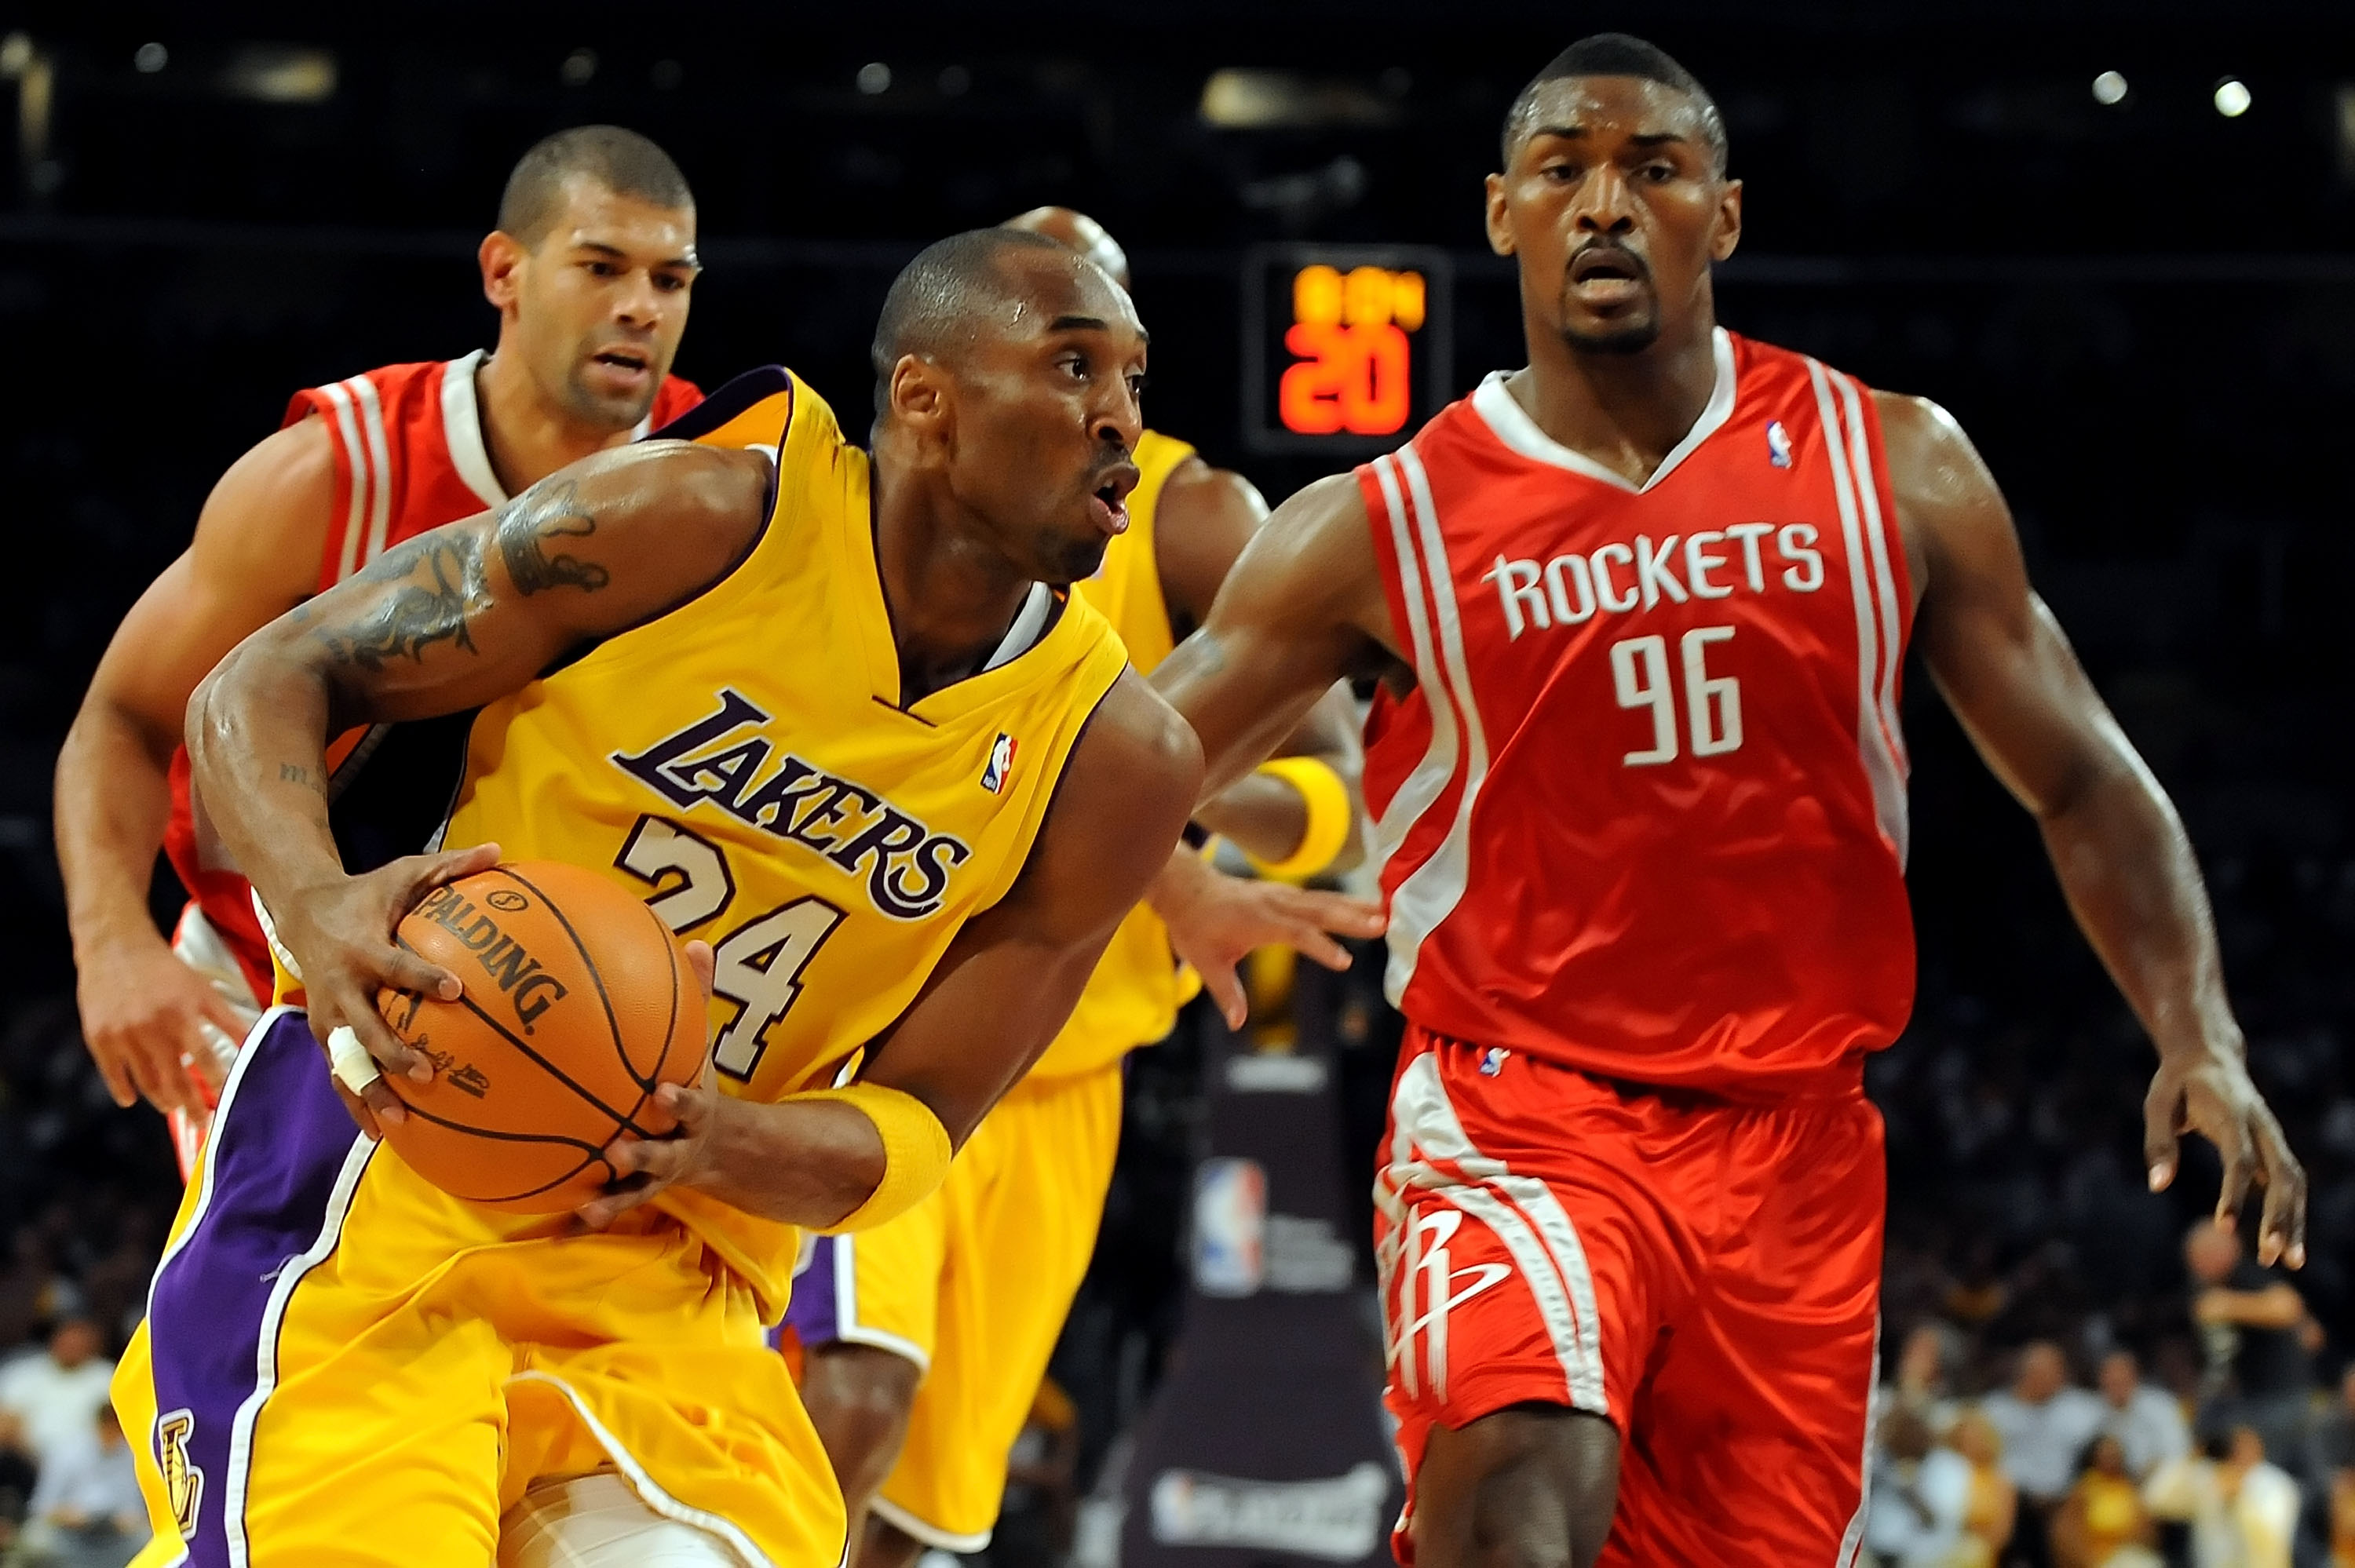 LOS ANGELES, CA - MAY 06:  Kobe Bryant #24 of the Los Angeles Lakers drives between (R) Ron Artest #96 and Shane Battier #31 of the Houston Rockets in the first half of Game Two of the Western Conference Semifinals during the 2009 NBA Playoffs at Staples